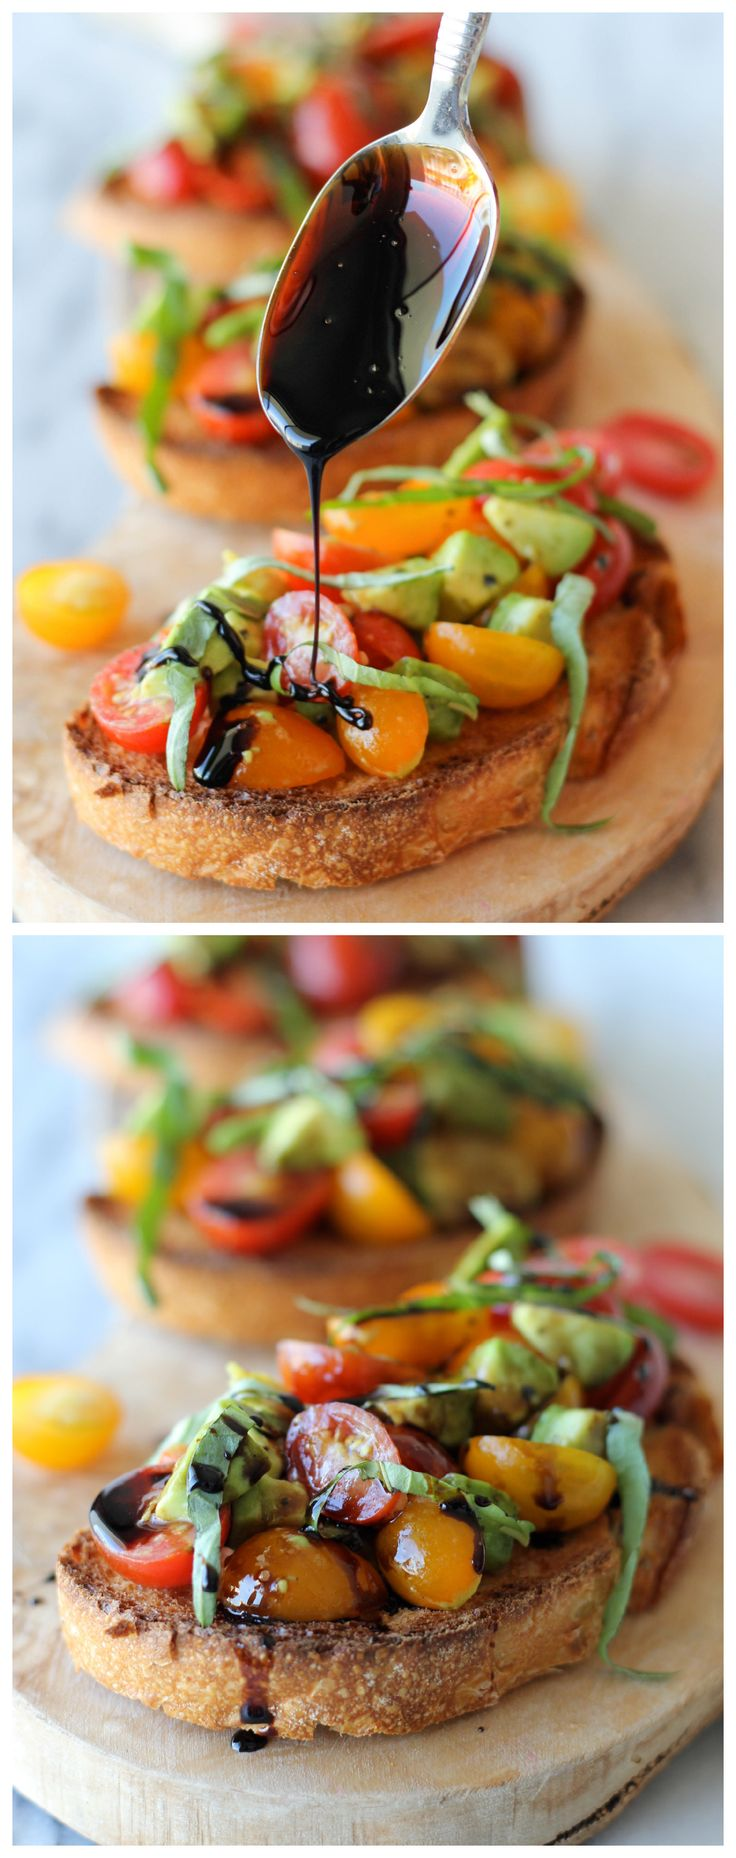 Avocado Bruschetta with Balsamic Reduction - With ripe avocado and juicy grape tomatoes, this is a great party snack